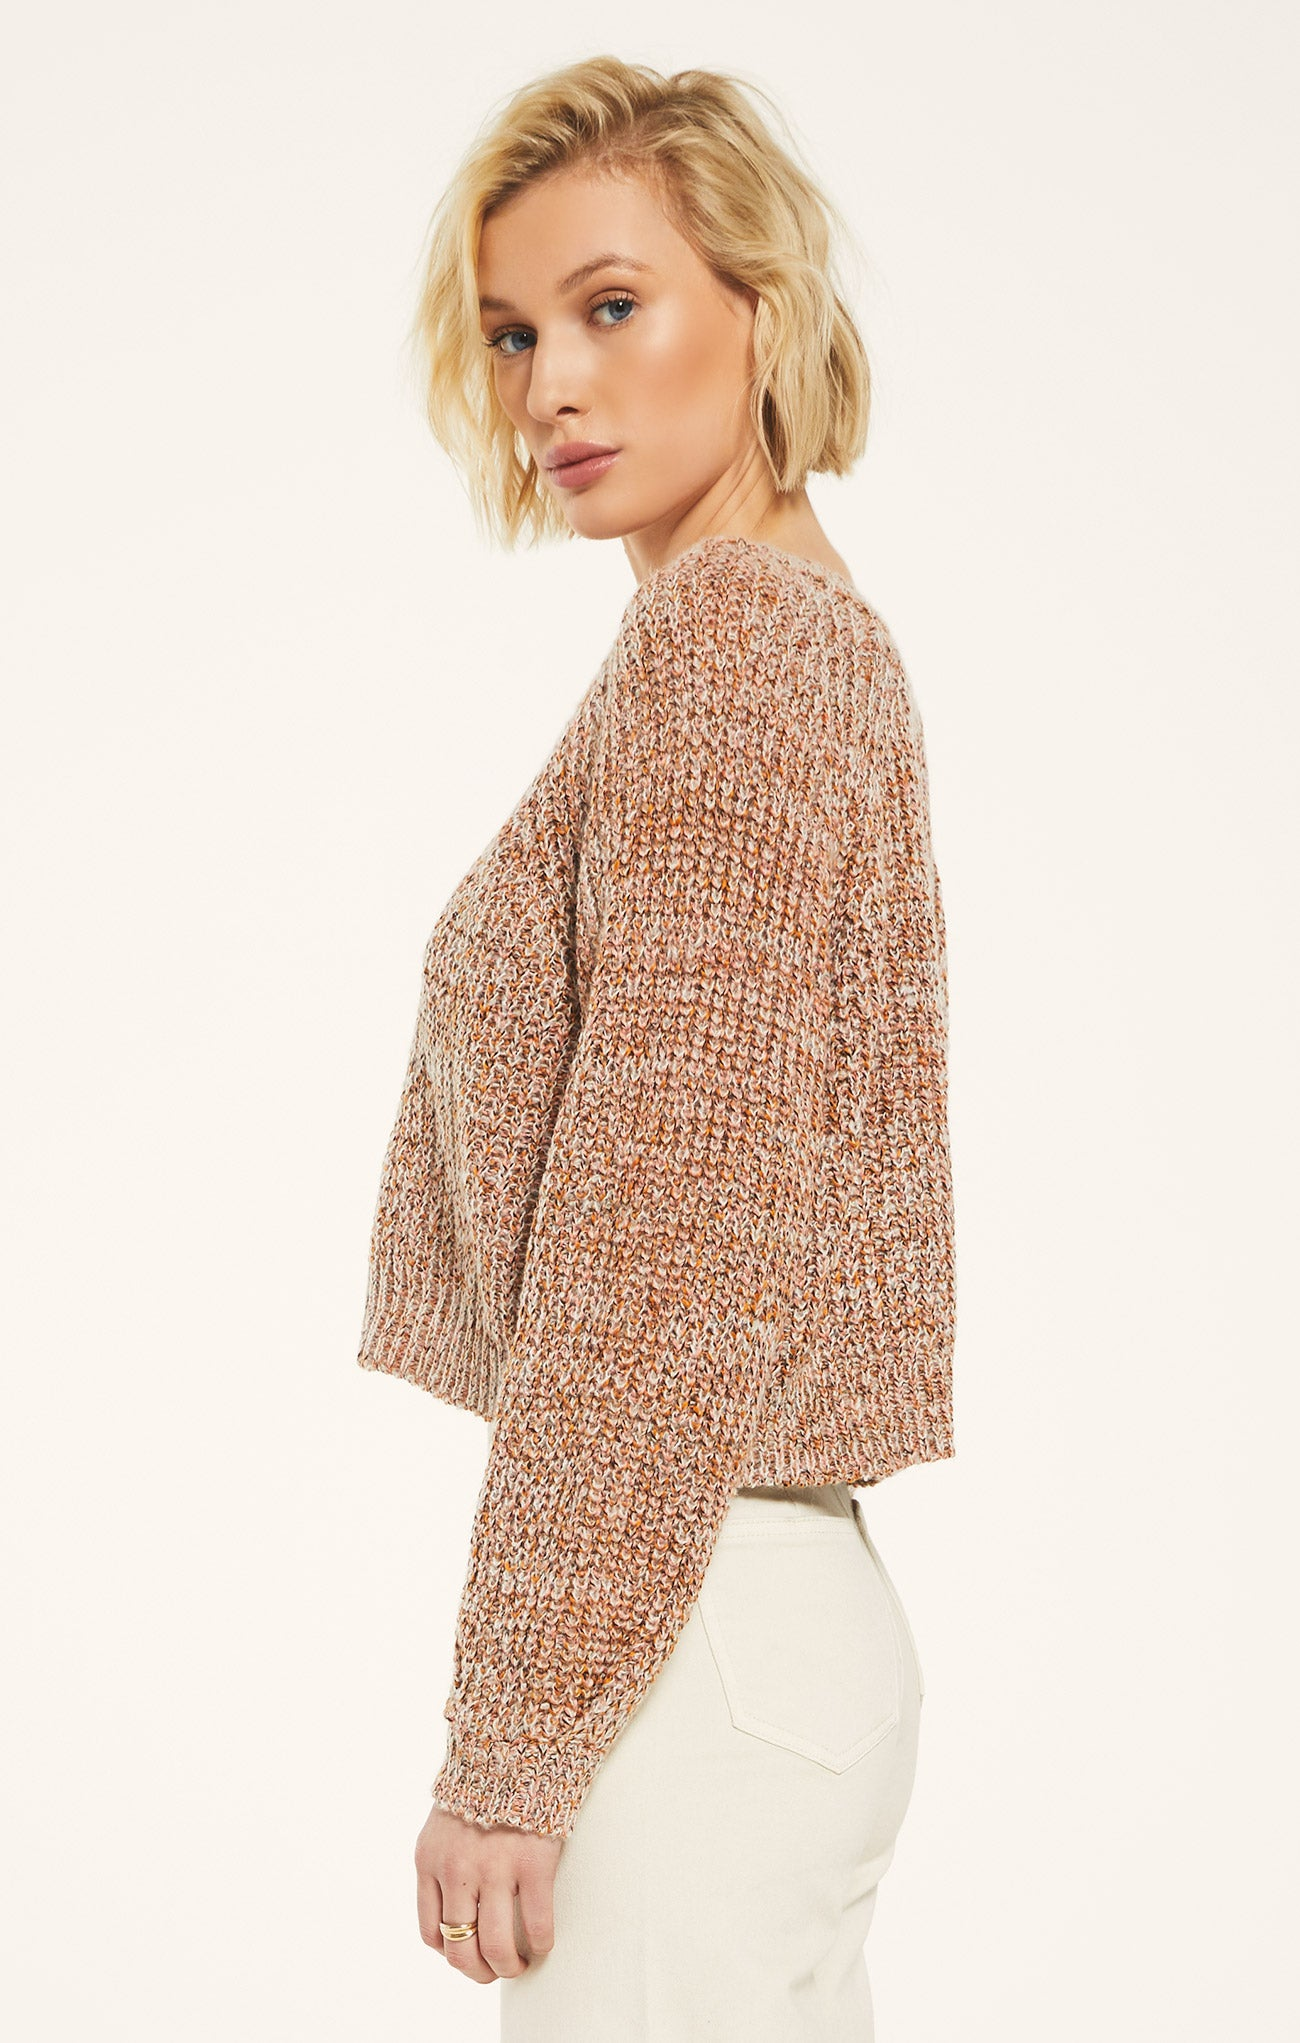 Sweaters Rathaus Sweater by Rag Poets Baked Clay